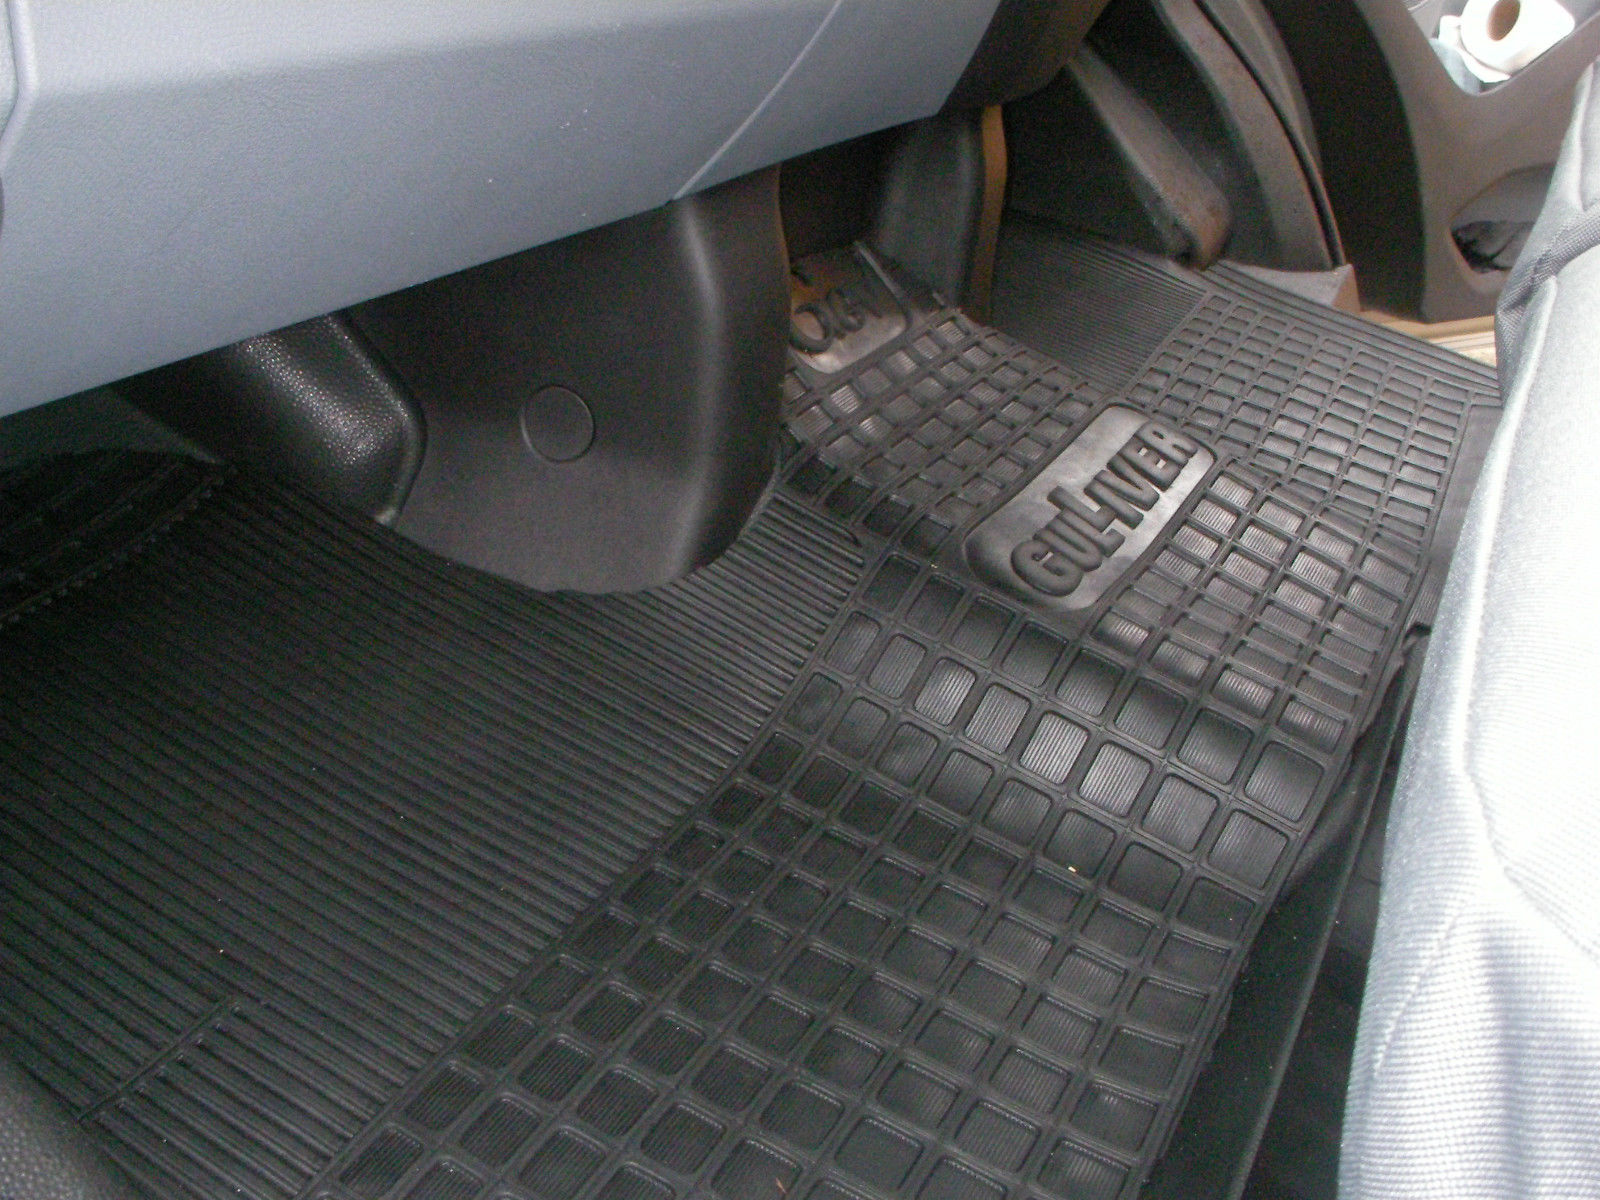 trans heavy transit car covers mat duty ford floor mats floormat custom direct seat